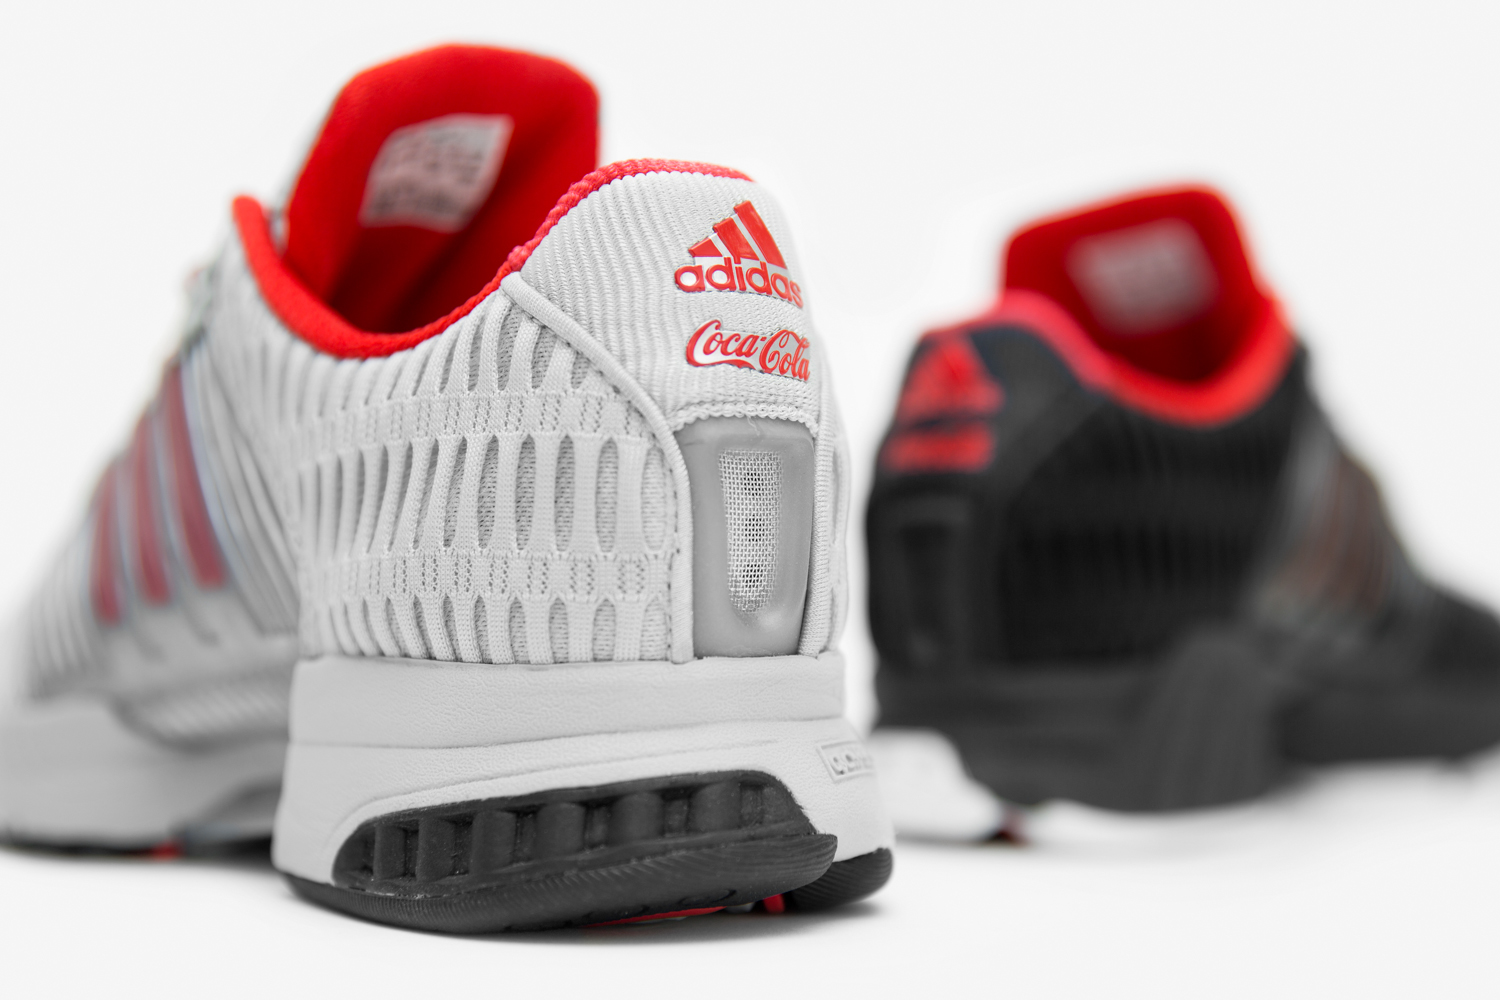 new concept 90503 4ee75 switzerland adidas climacool coca cola 1 002 d860d 8b9b9 where to buy  adidasoriginalscocacolaclimacool 2 adidasoriginalscocacolaclimacool 5 ...